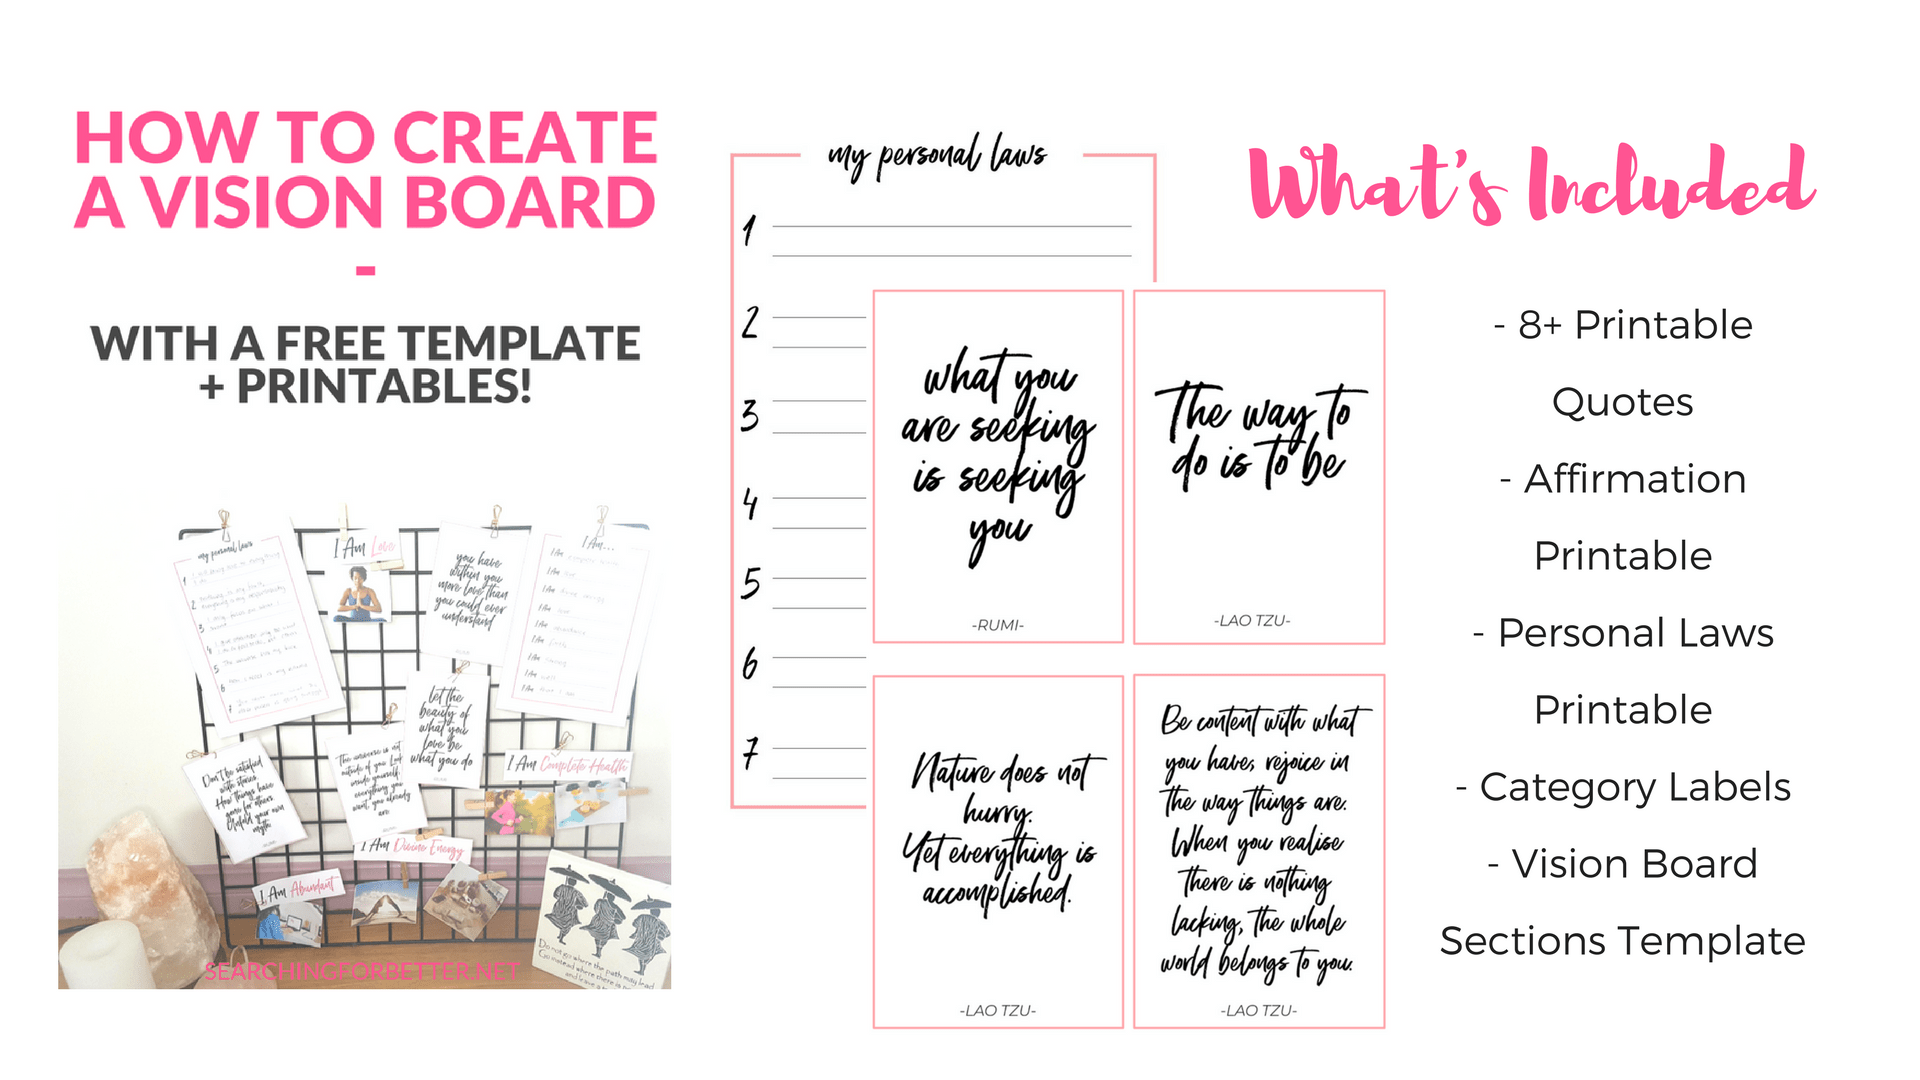 Creating A Vision Board With Free Template